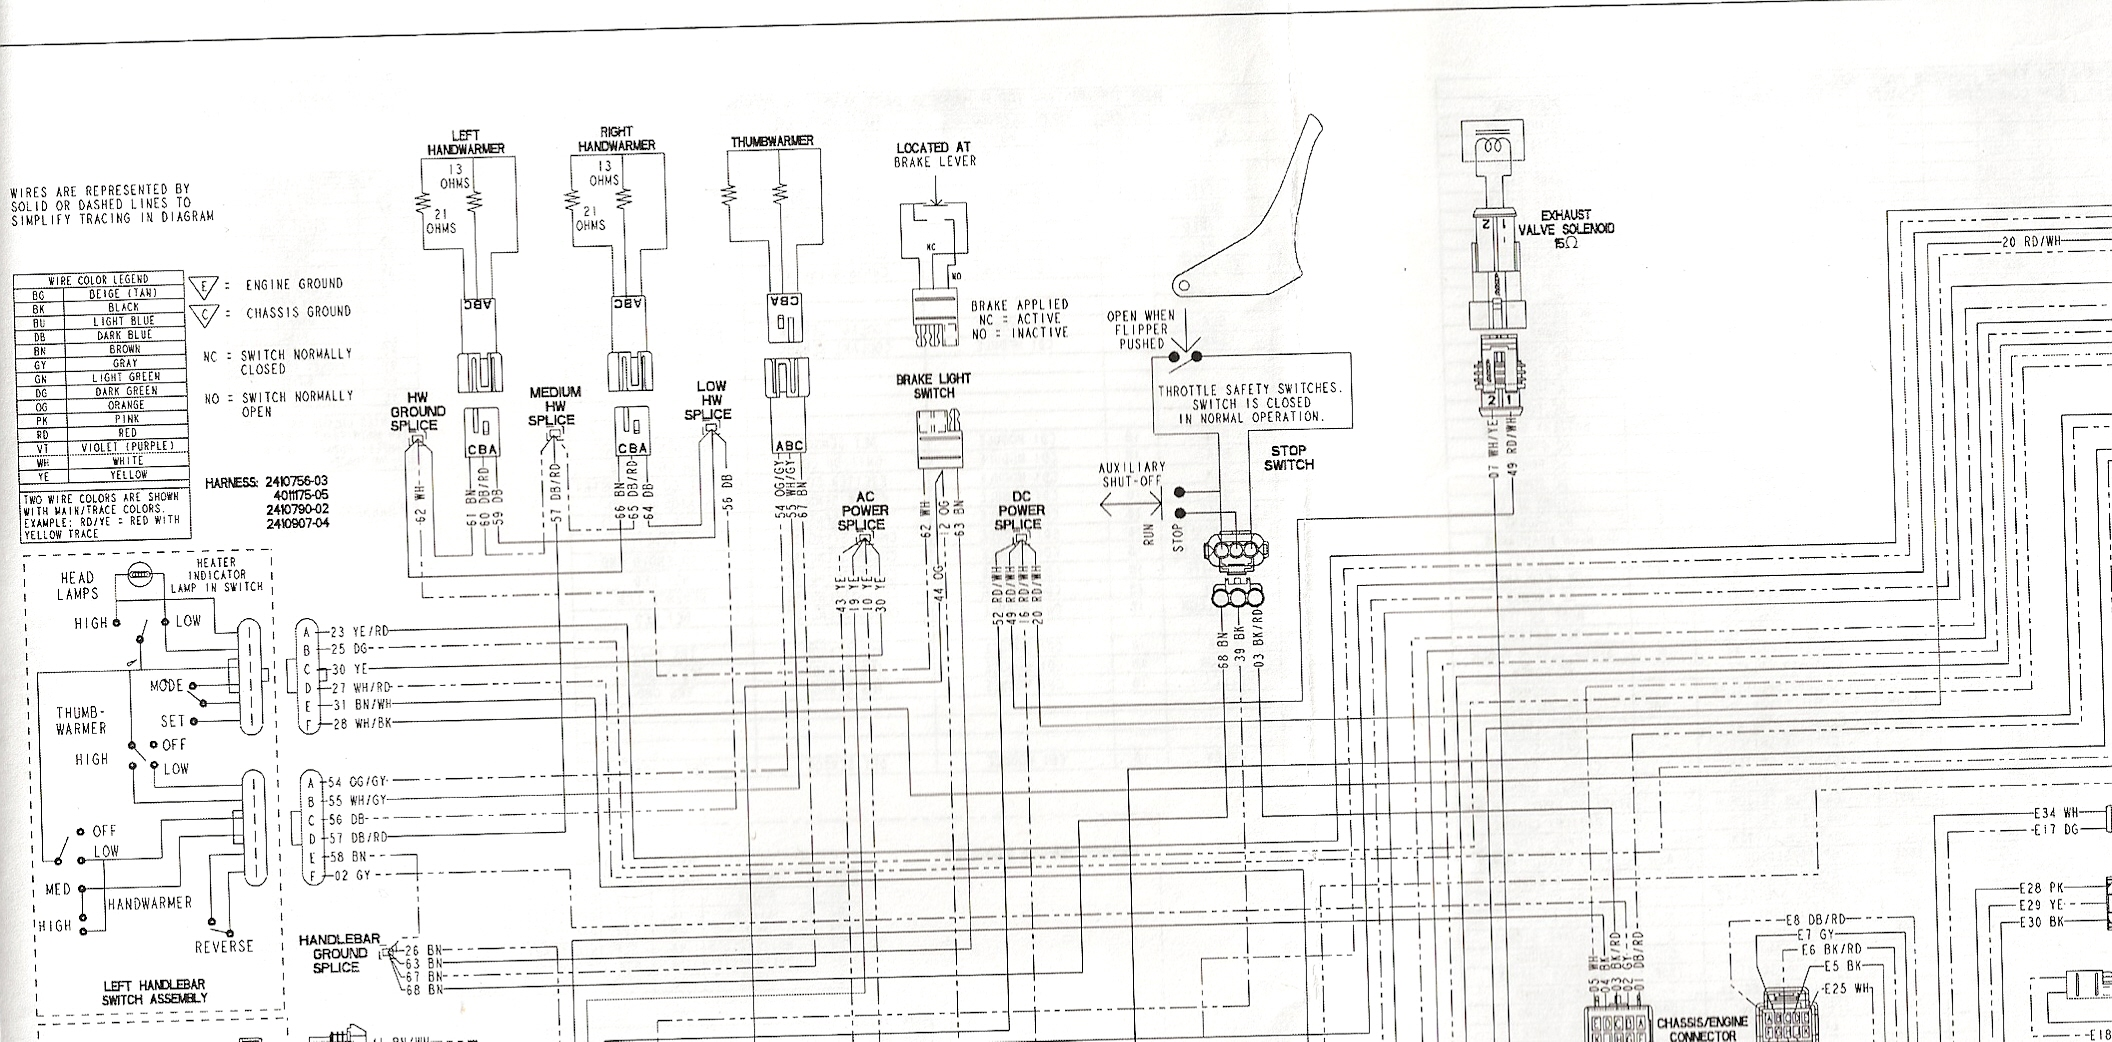 diagram] 2006 suzuki c50 wiring diagram full version hd quality wiring  diagram - pdfxtobieq.mefpie.fr  m.e.f.p.i.e